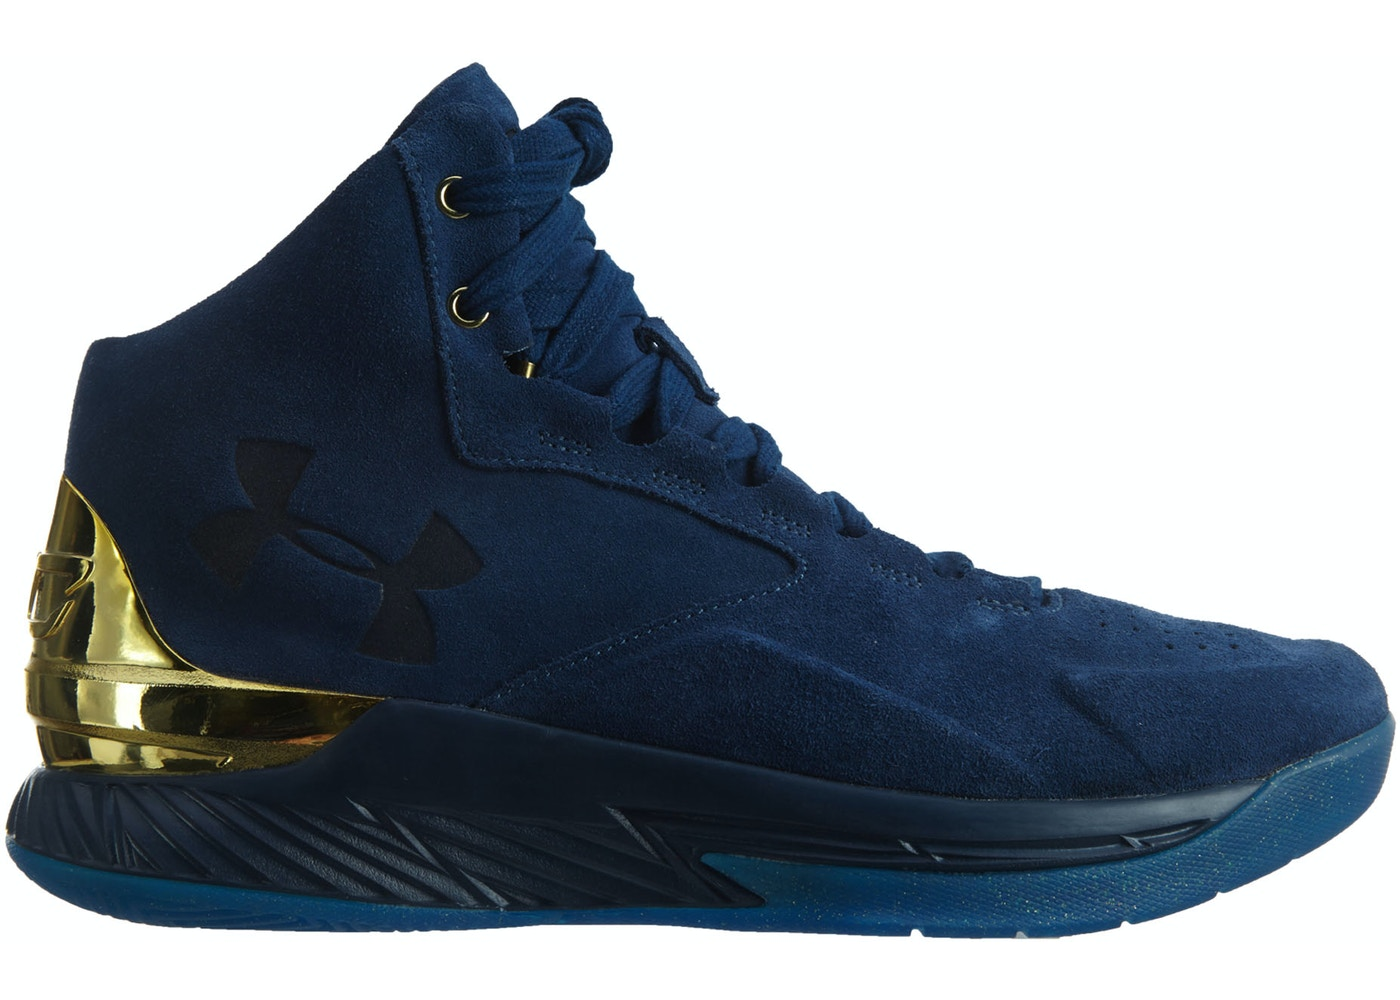 f05fd2c19ad1 Under Armour Curry 1 Lux Mid Basketball Shoe Blackout Navy Gold Blackout  Navy